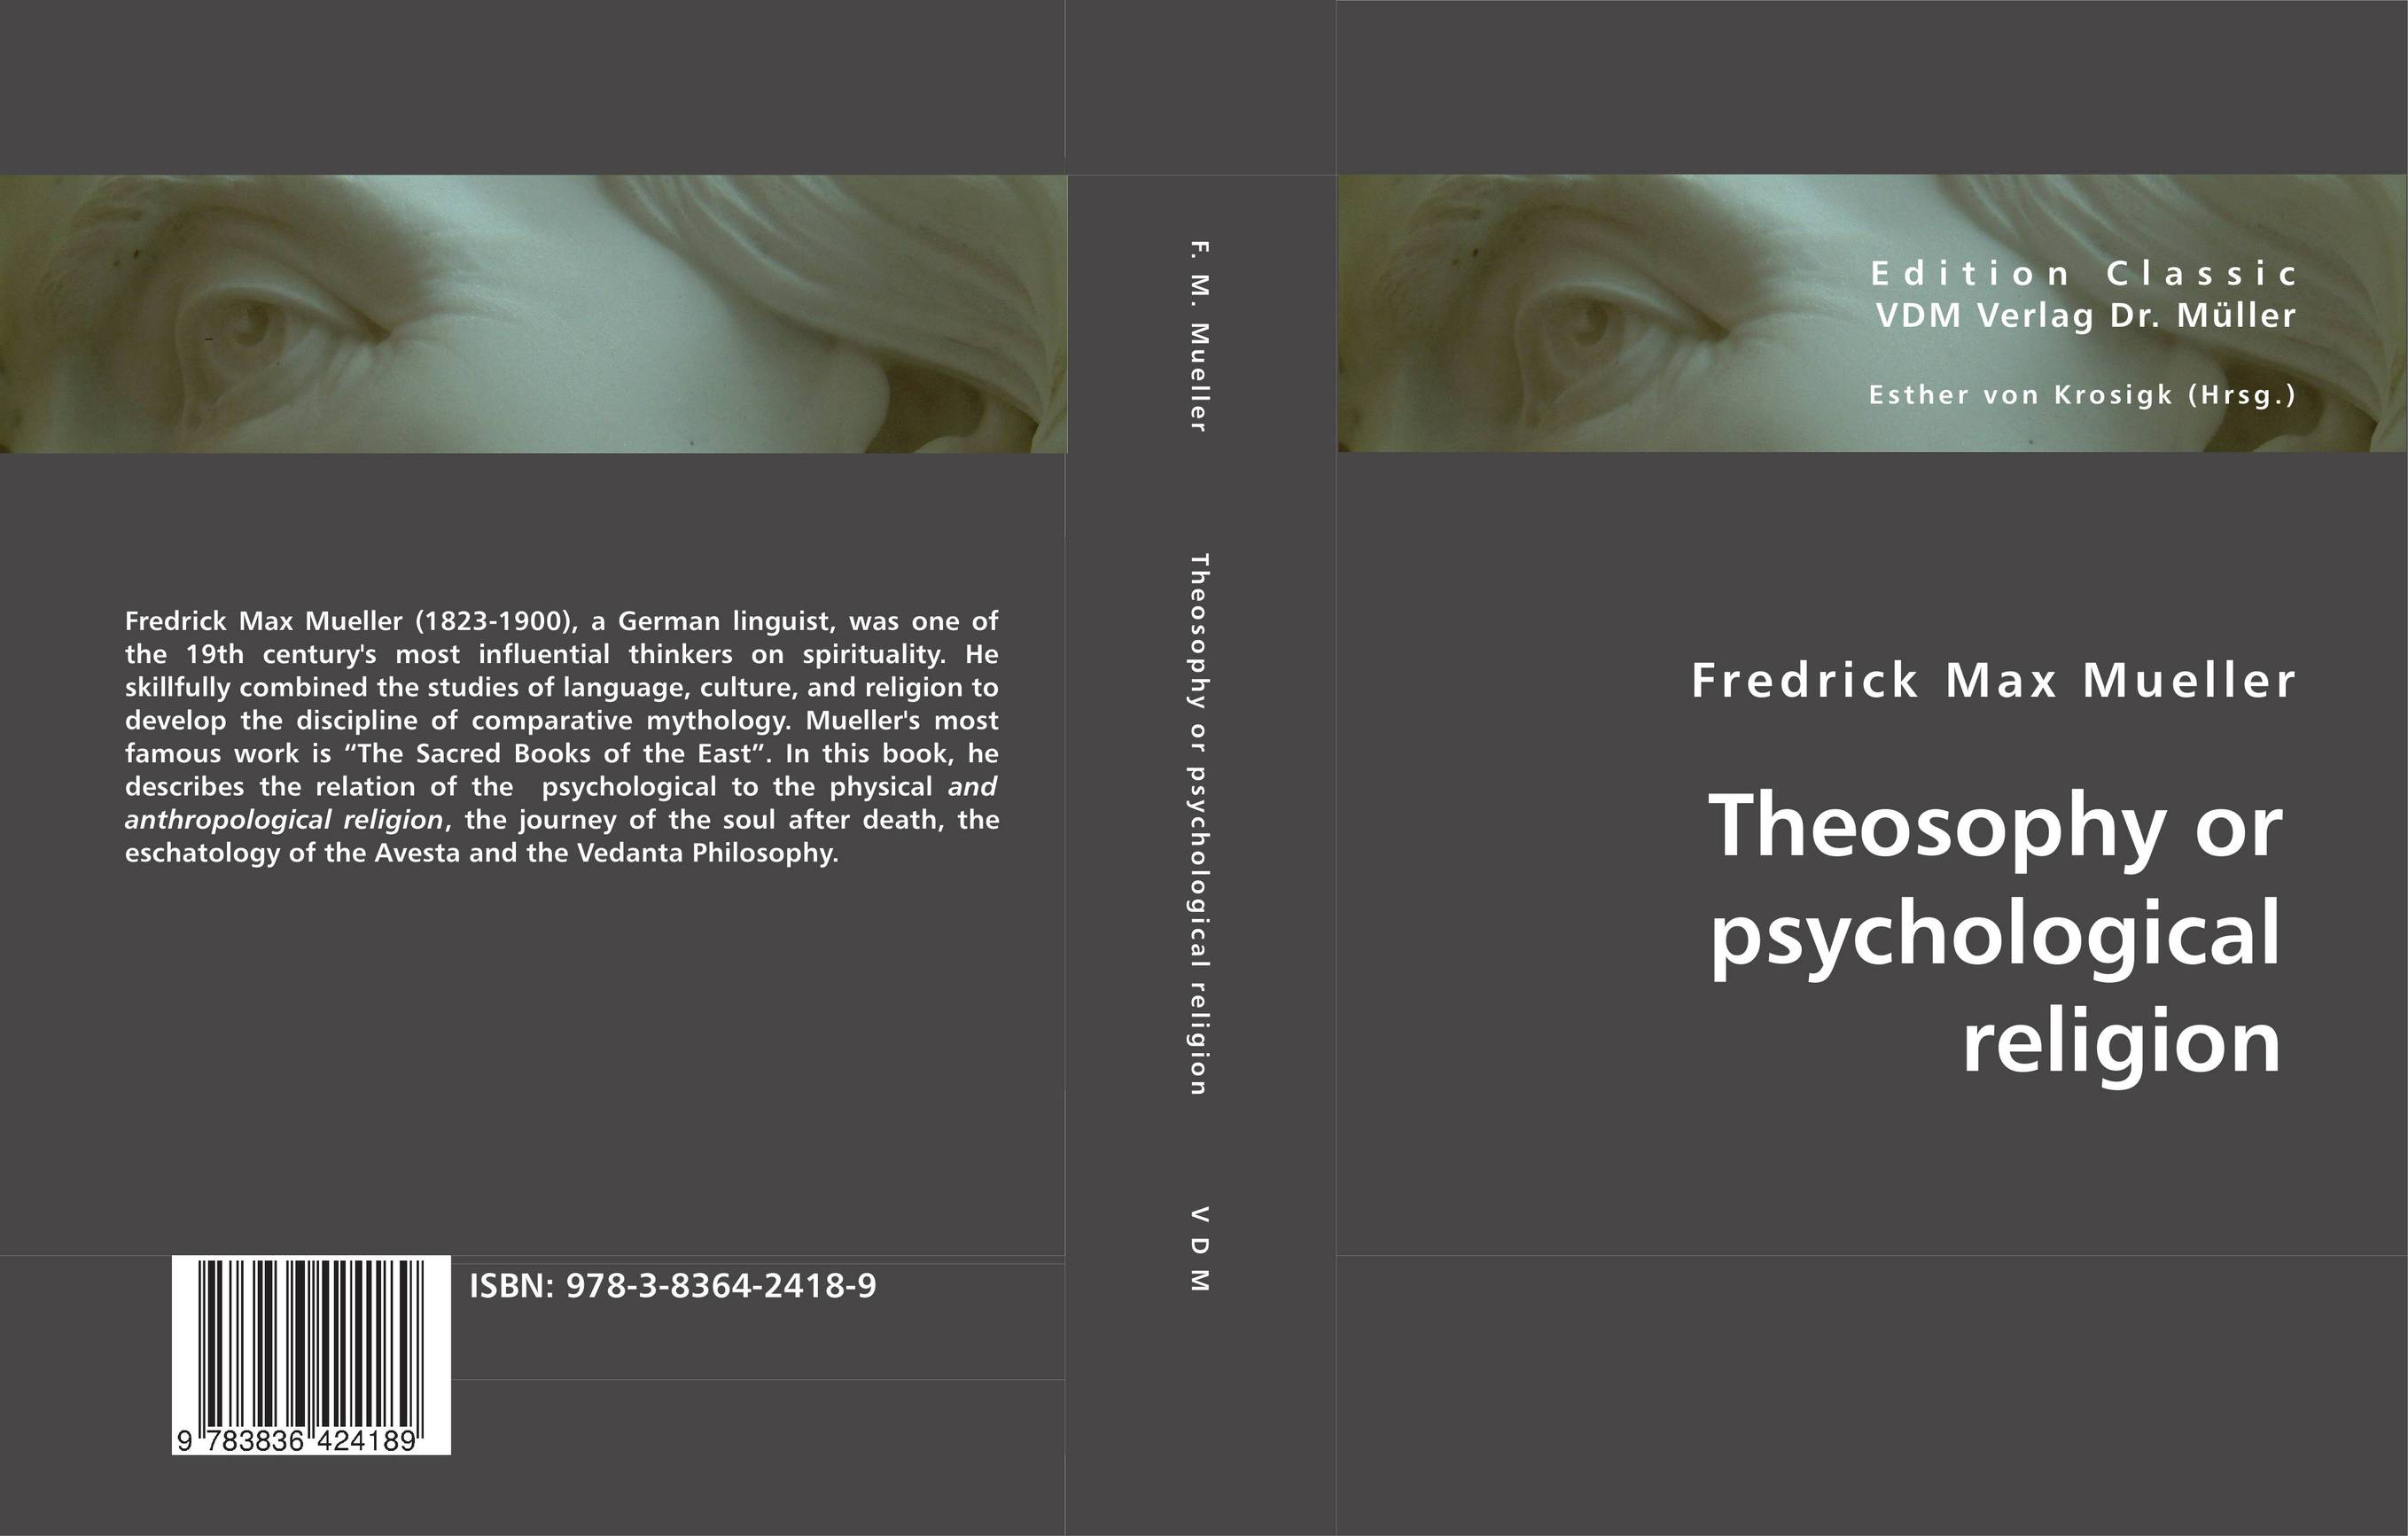 Theosophy or psychological religion oxford studies in philosophy of religion volume 8